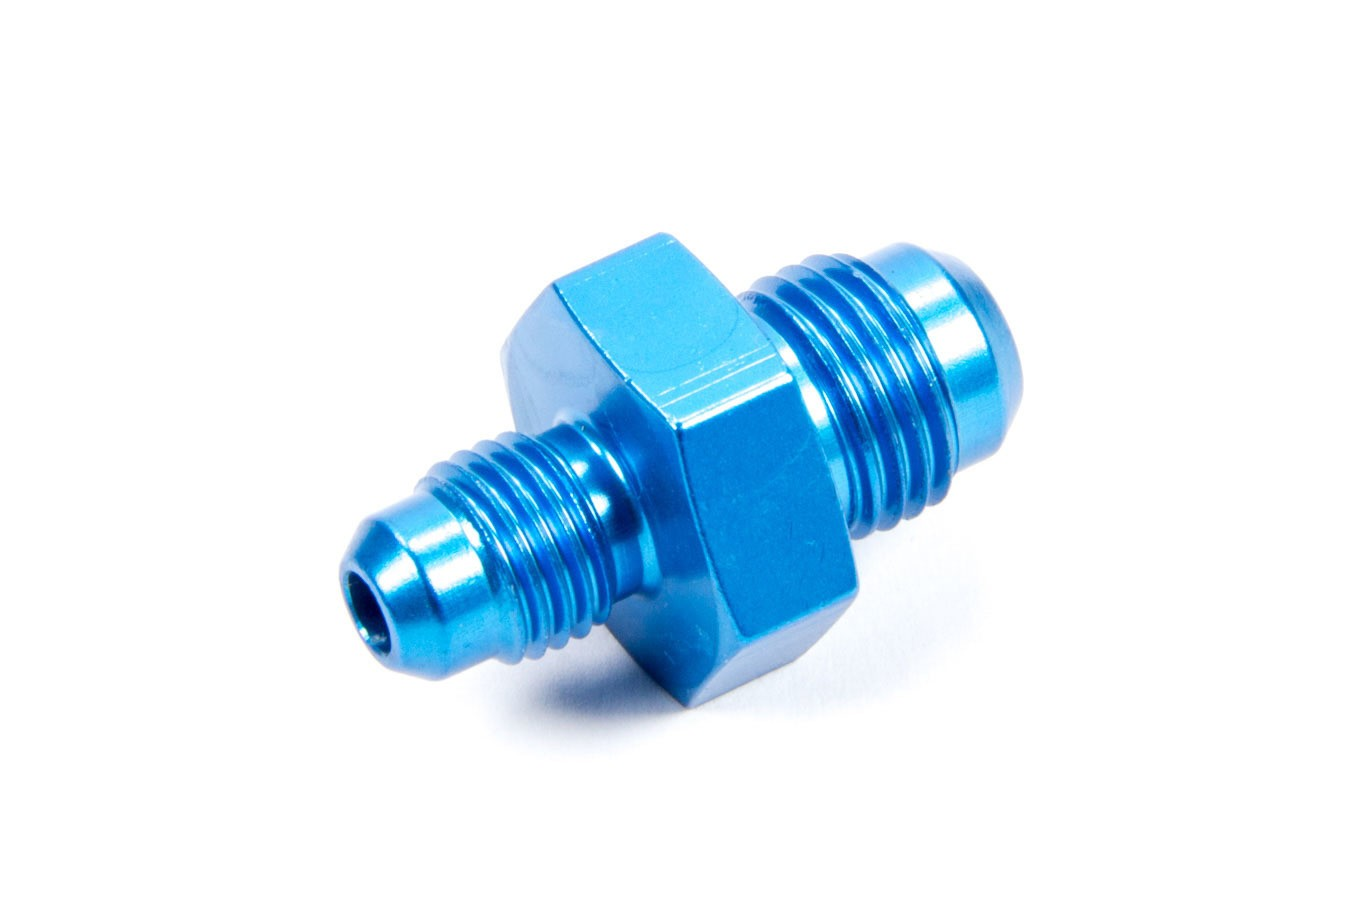 Fragola 491906 Fitting, Adapter, Straight, 6 AN Male to 4 AN Male, Aluminum, Blue Anodize, Each